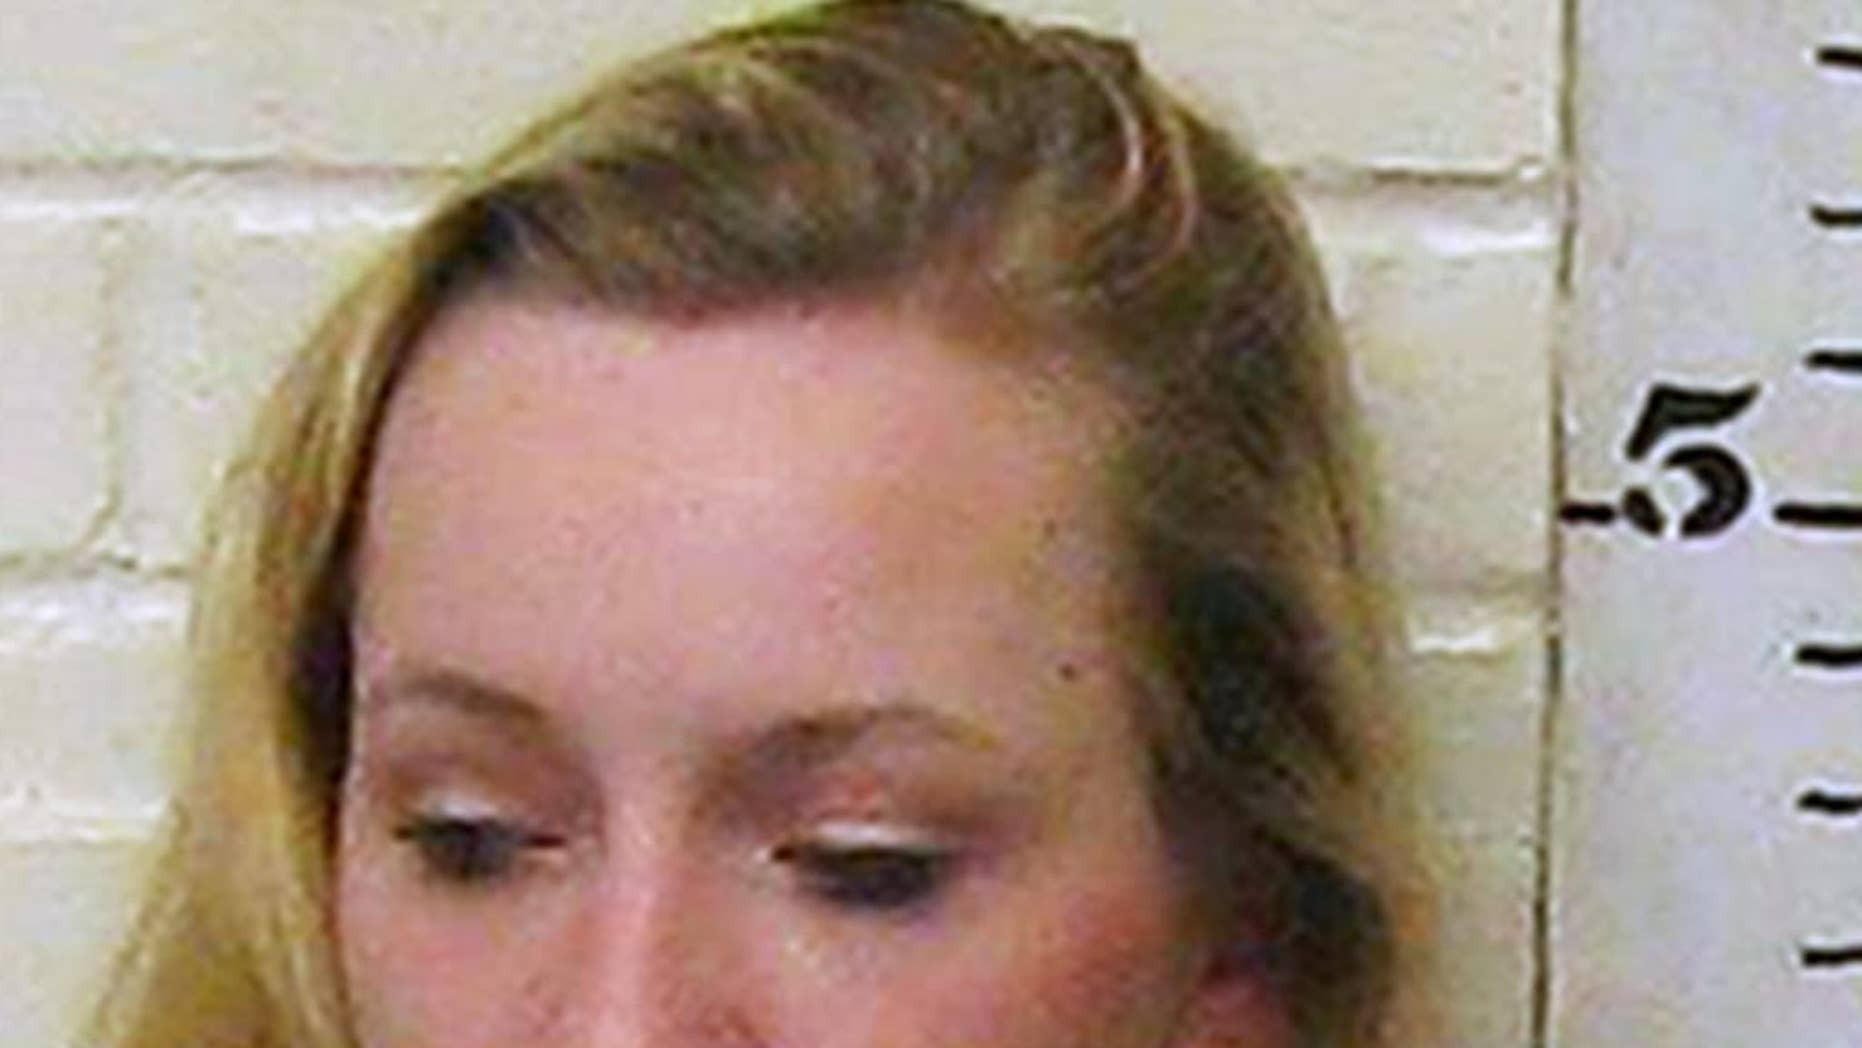 This photo provided by the Denison Police Department in Denison, Texas, shows Breana Harmon Talbott. Authorities say Talbott is facing charges after falsely reporting she was kidnapped and sexually assaulted by three black males behind a church in Denison on March 8, 2017. Police say she confessed to the hoax on Tuesday, March 21. (Denison Police Department via AP)